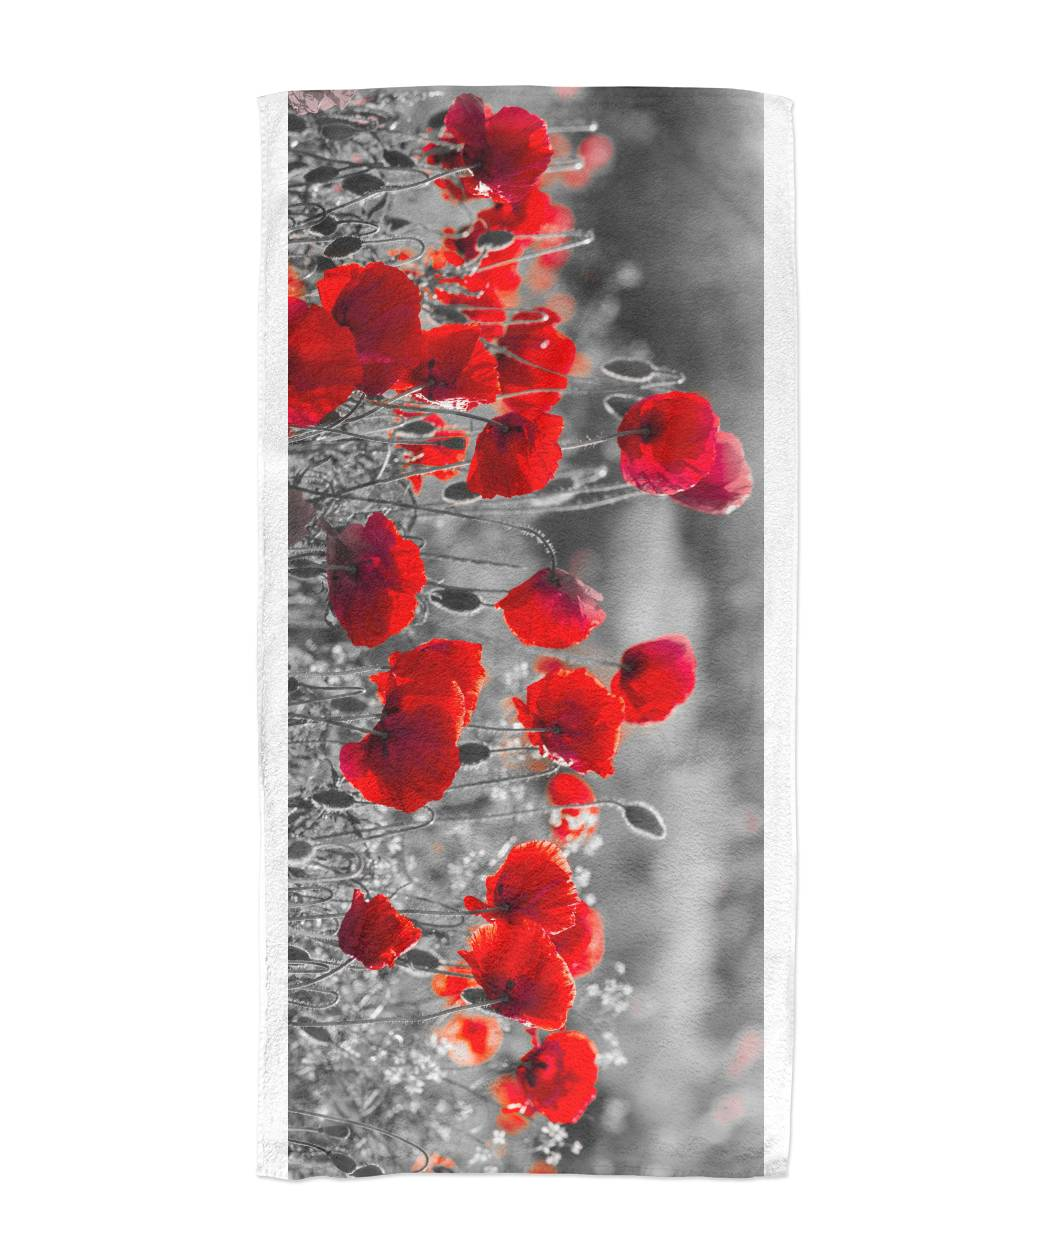 Flanders Fields Towel  - Black and White w/ Red Poppies Beach Towel 30x60